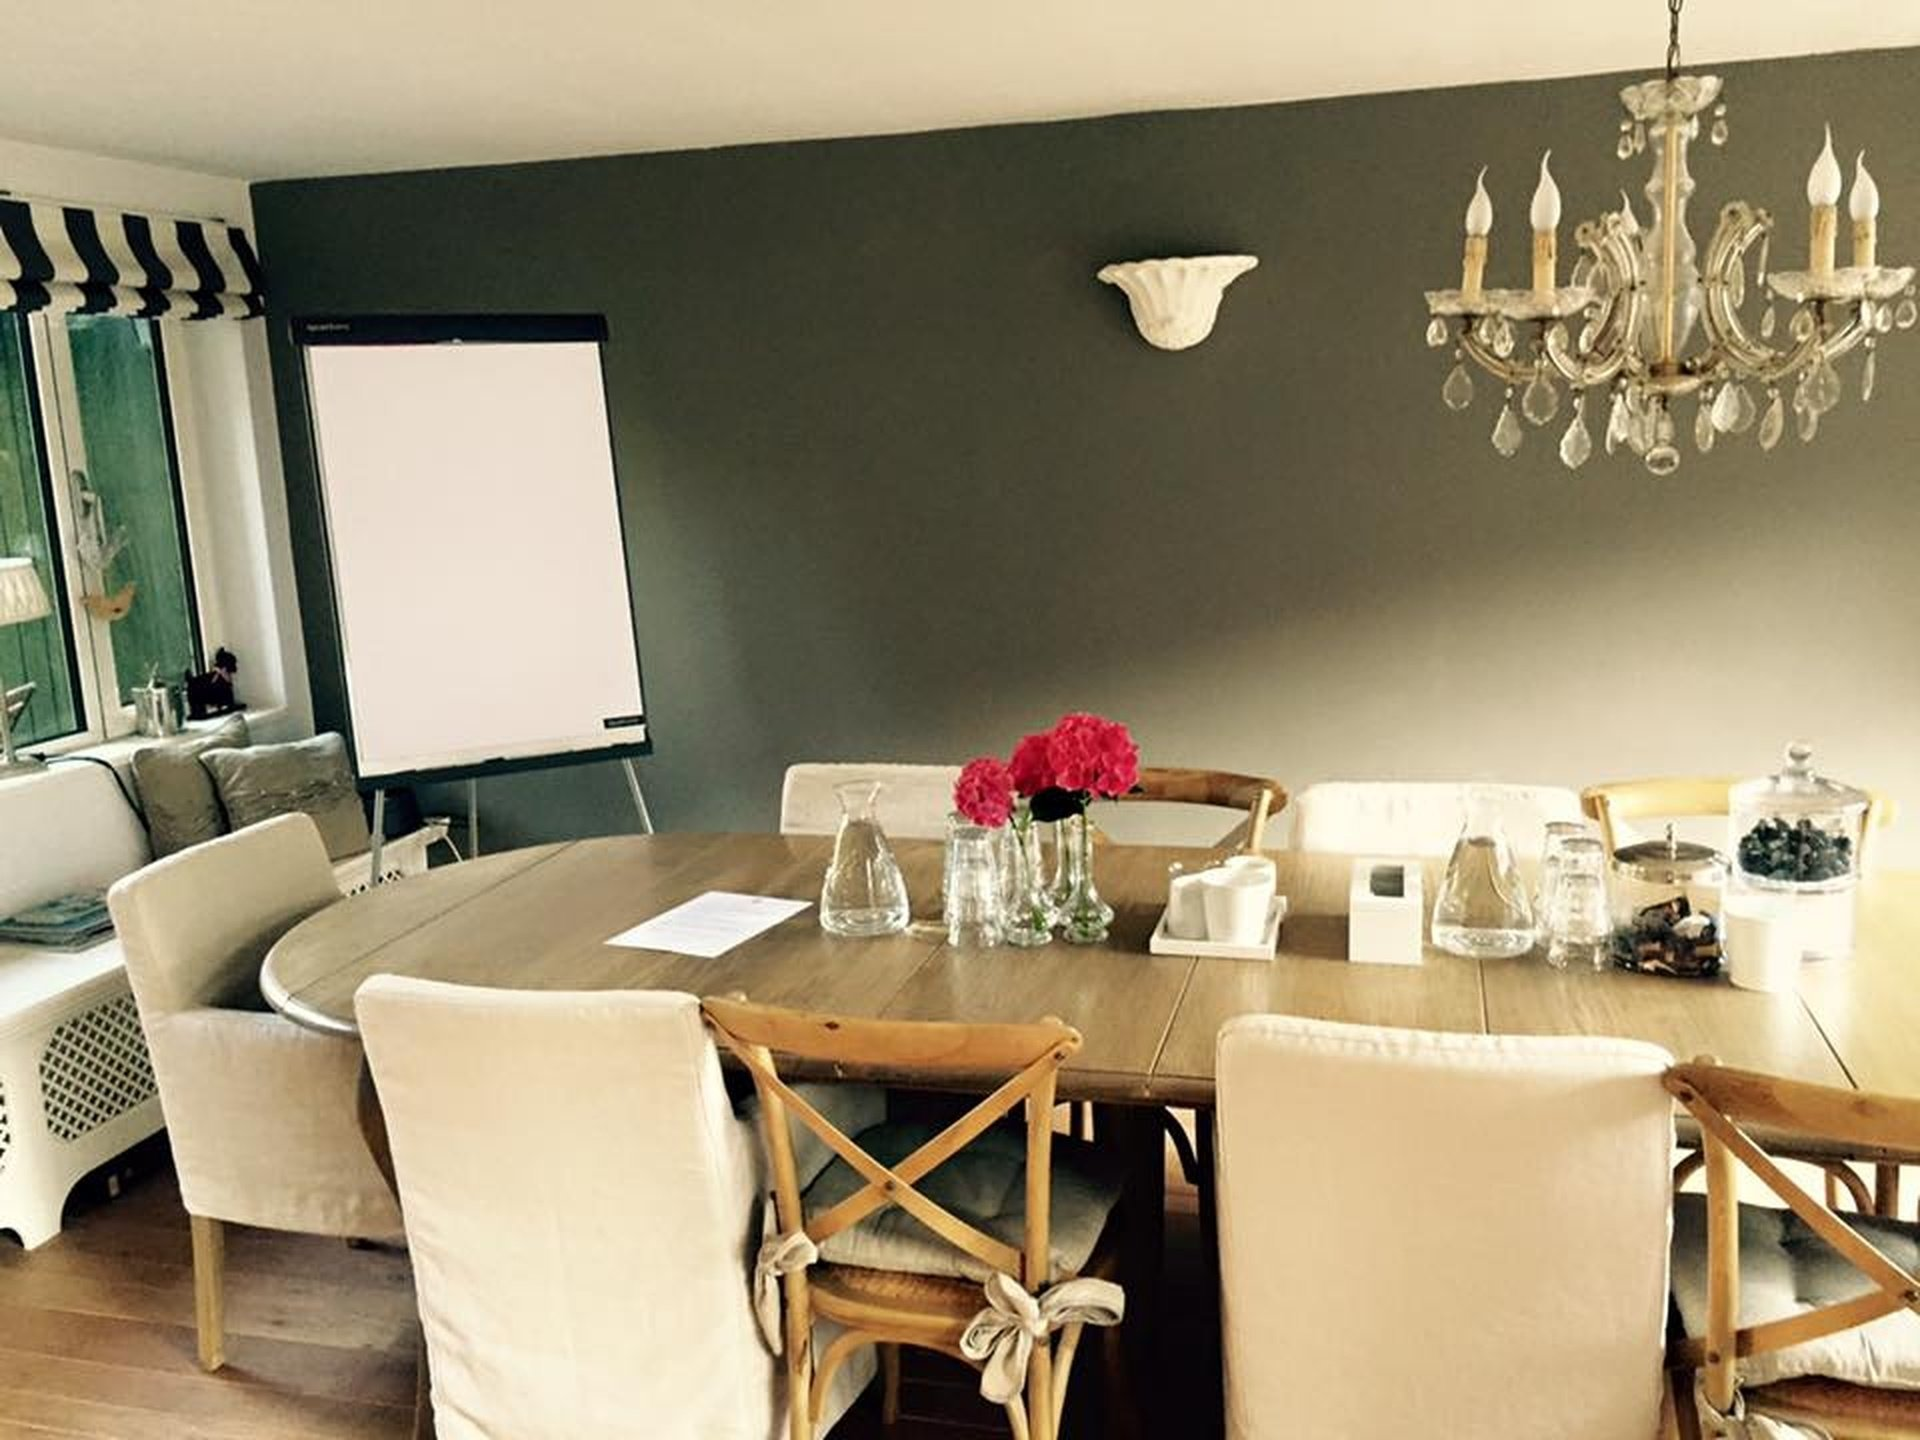 The Hague conference rooms Private residence Vergaderathome image 0